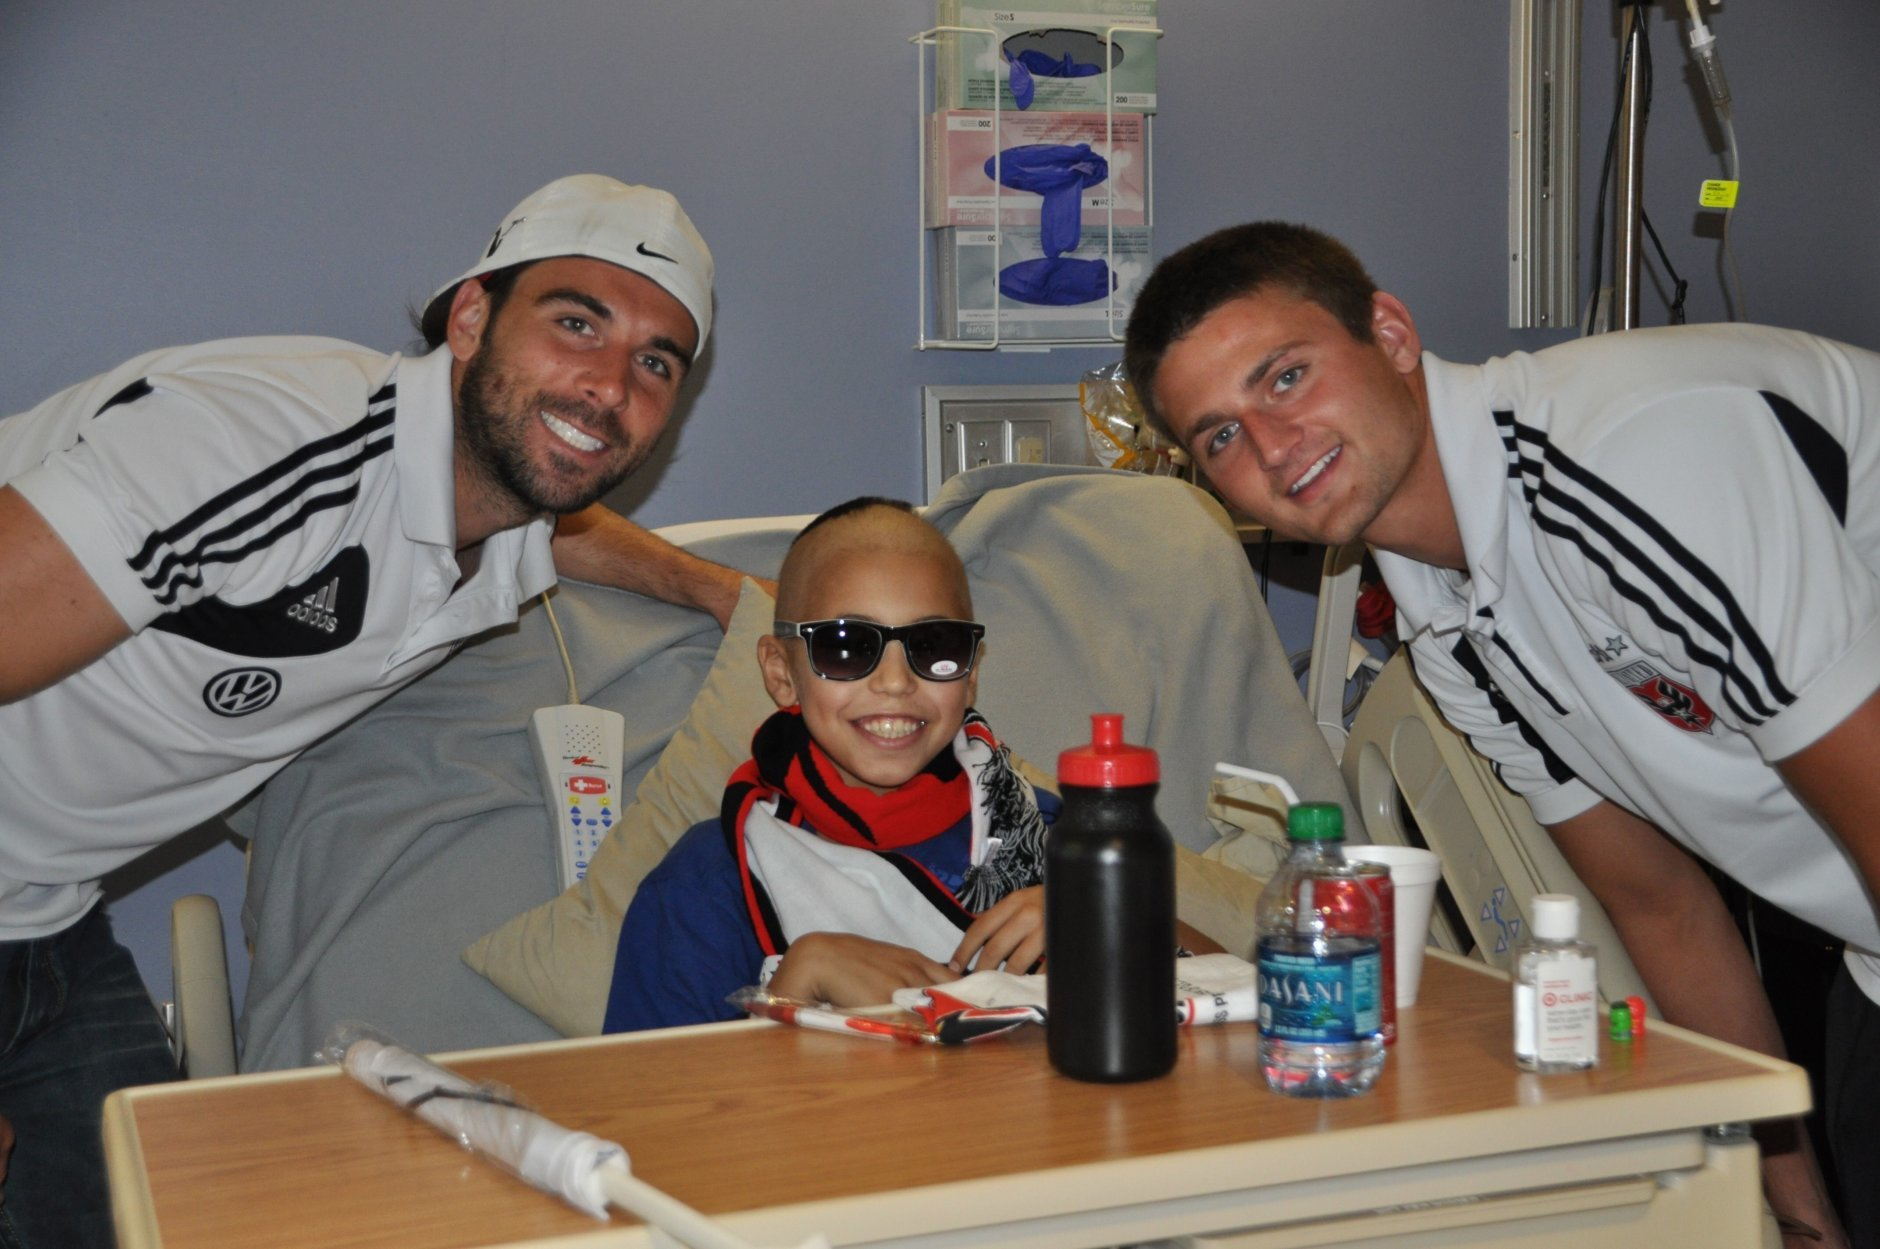 Soccer-loving Mathias Giordano, center, died after a 2-year battle with bone cancer at age 13. The foundation created in his honor spreads awareness and provides D.C. United tickets to families dealing with childhood cancer.(Courtesy Roya Giordano )